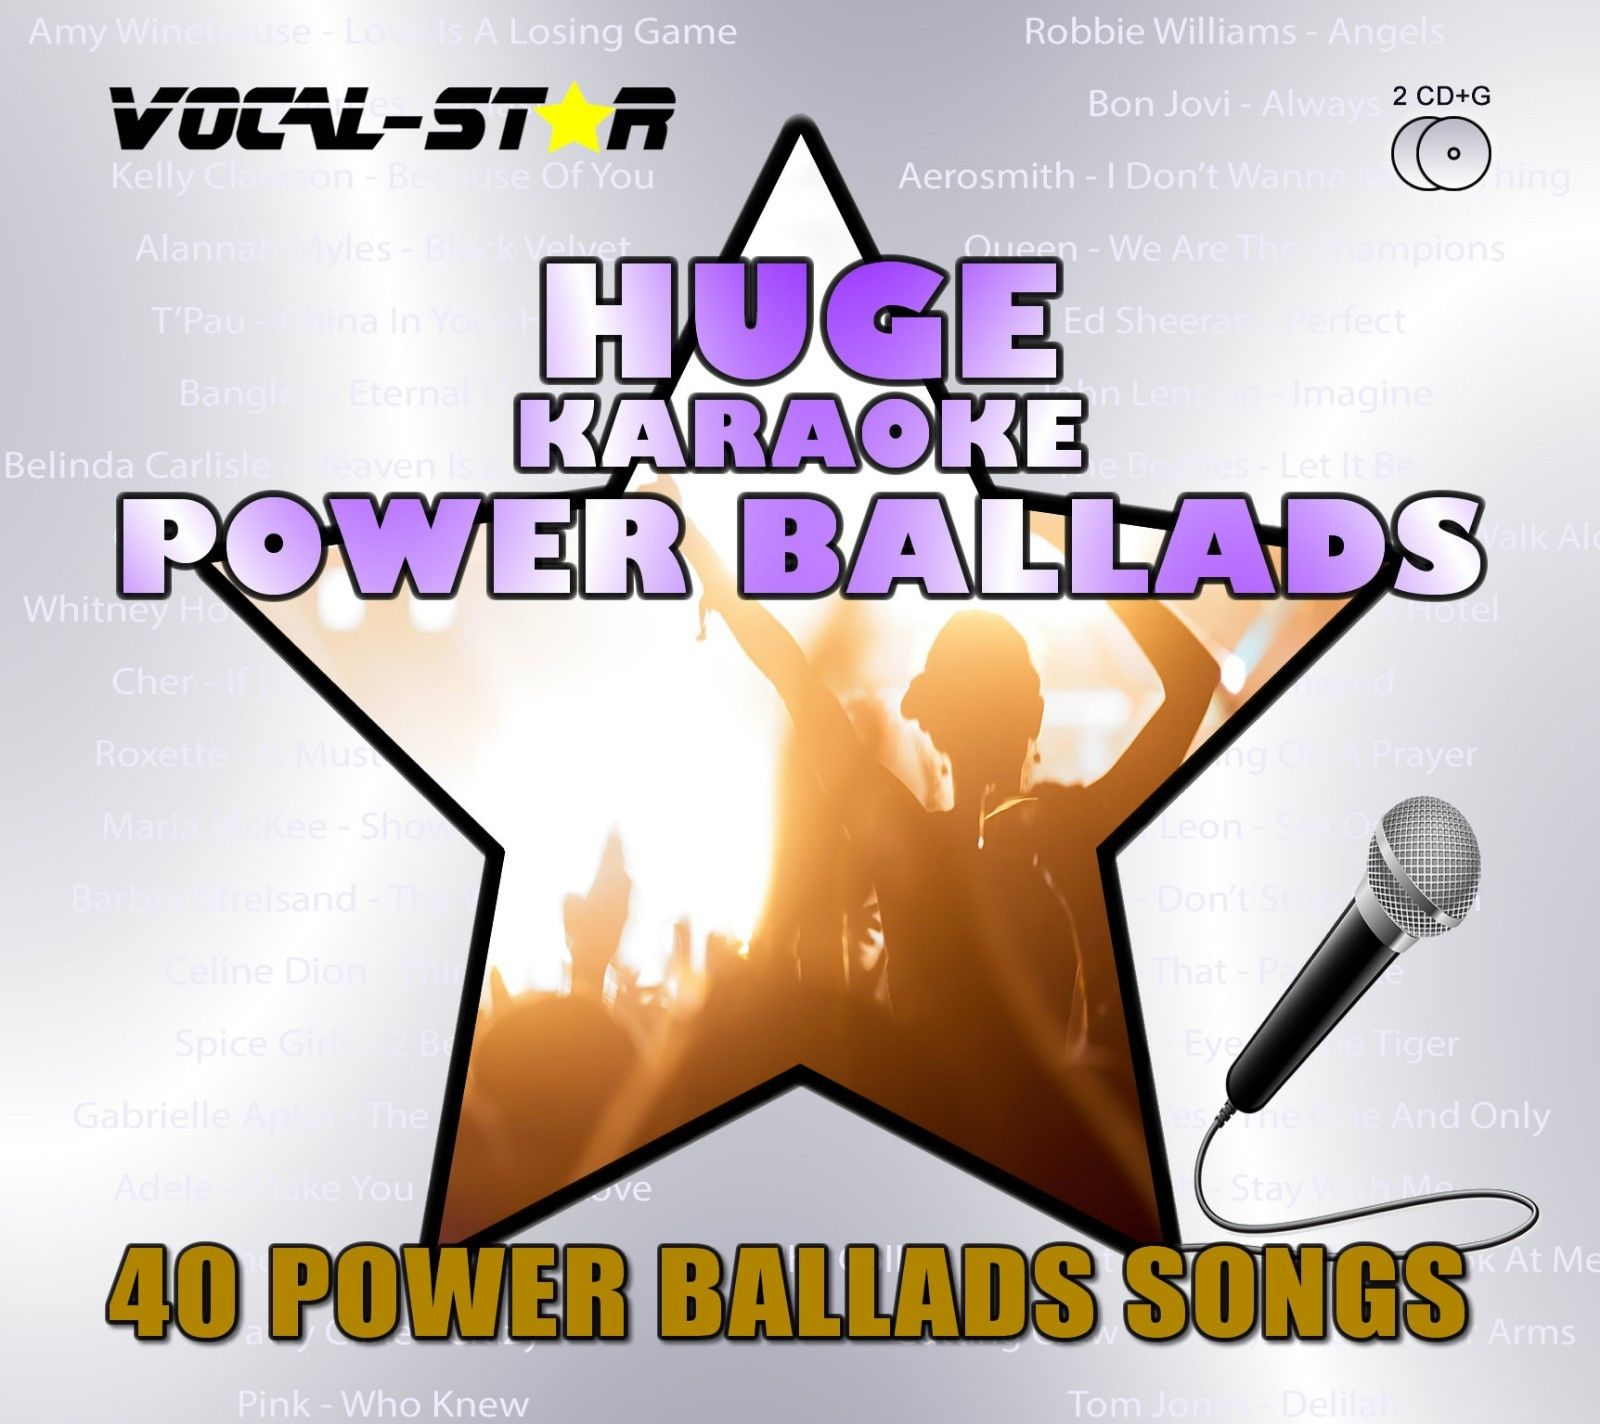 Vocal-Star Huge Karaoke Hits of Power Ballads - 40 Songs - 2 CDG Disc Set